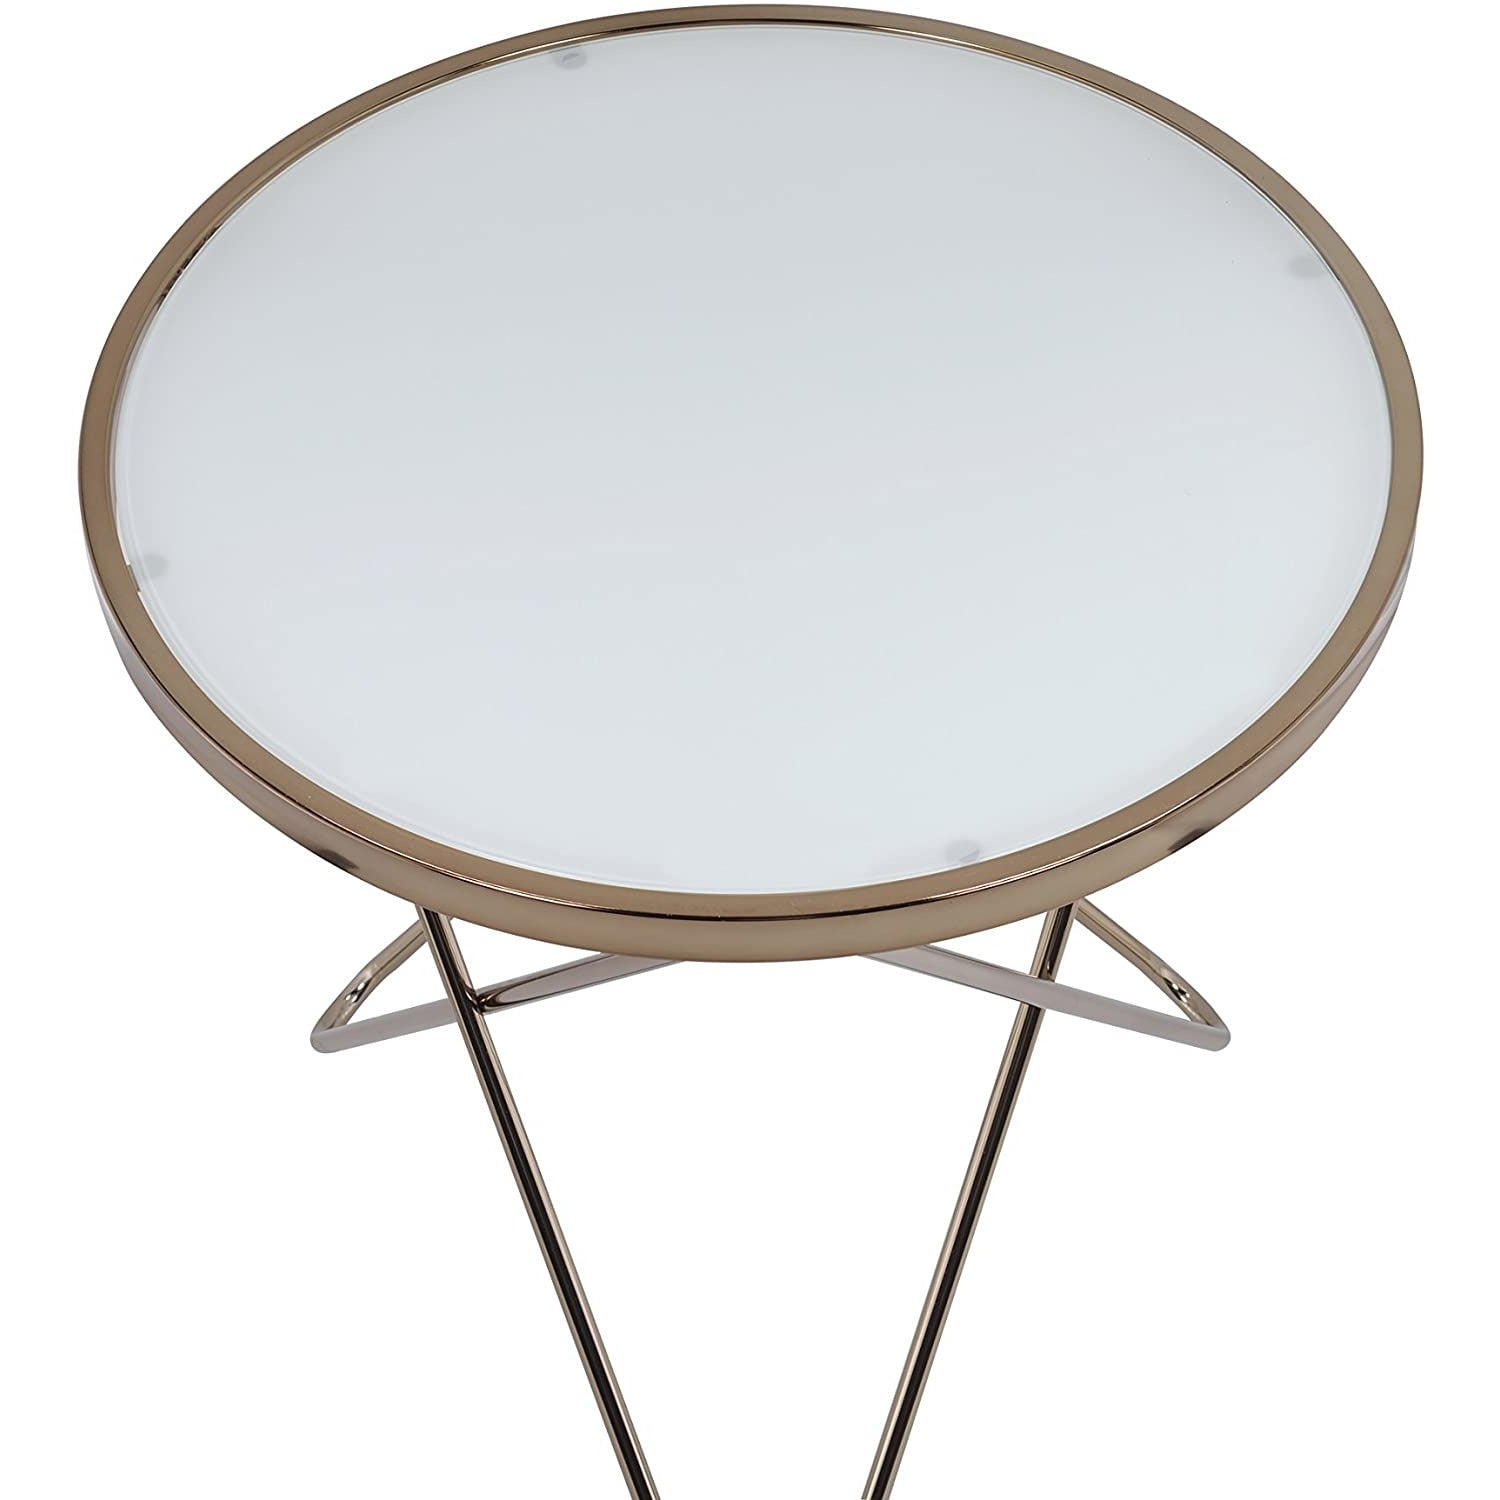 Lavender Round Top Coffee Table Overlapped V-Shape Metal Base BH81825 BH81830